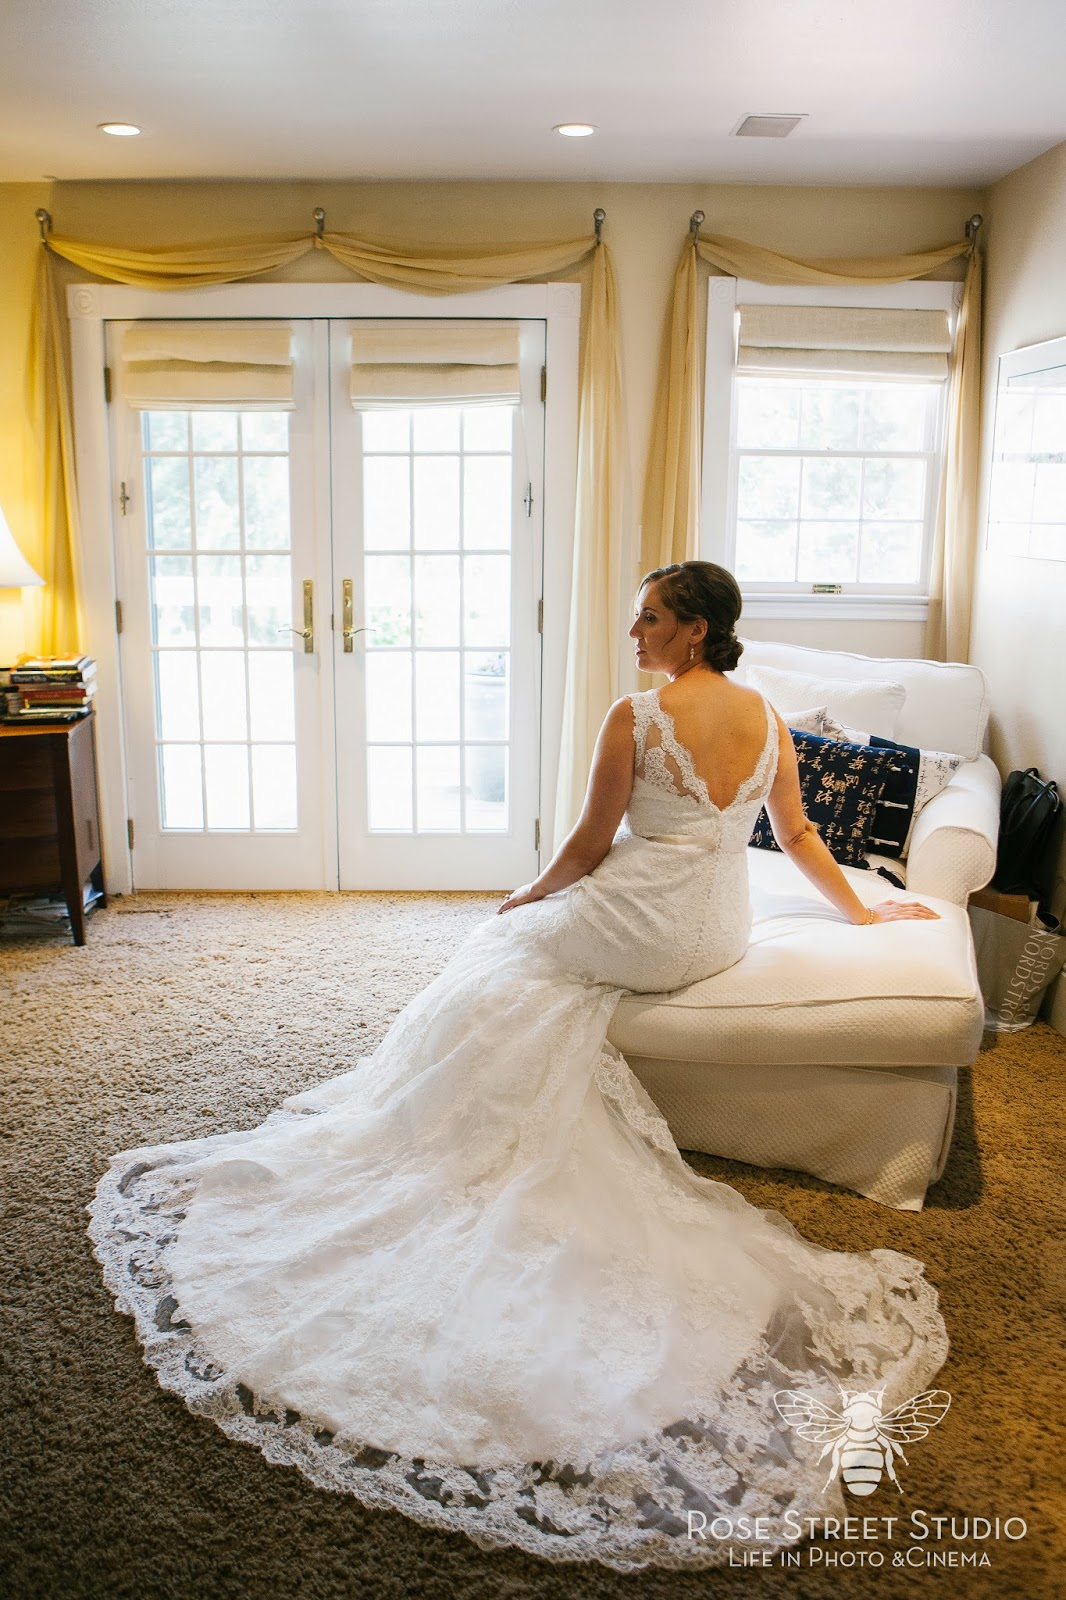 Beautiful Lace Wedding Gown l Rose Street Photo l Take the Cake Event Planning